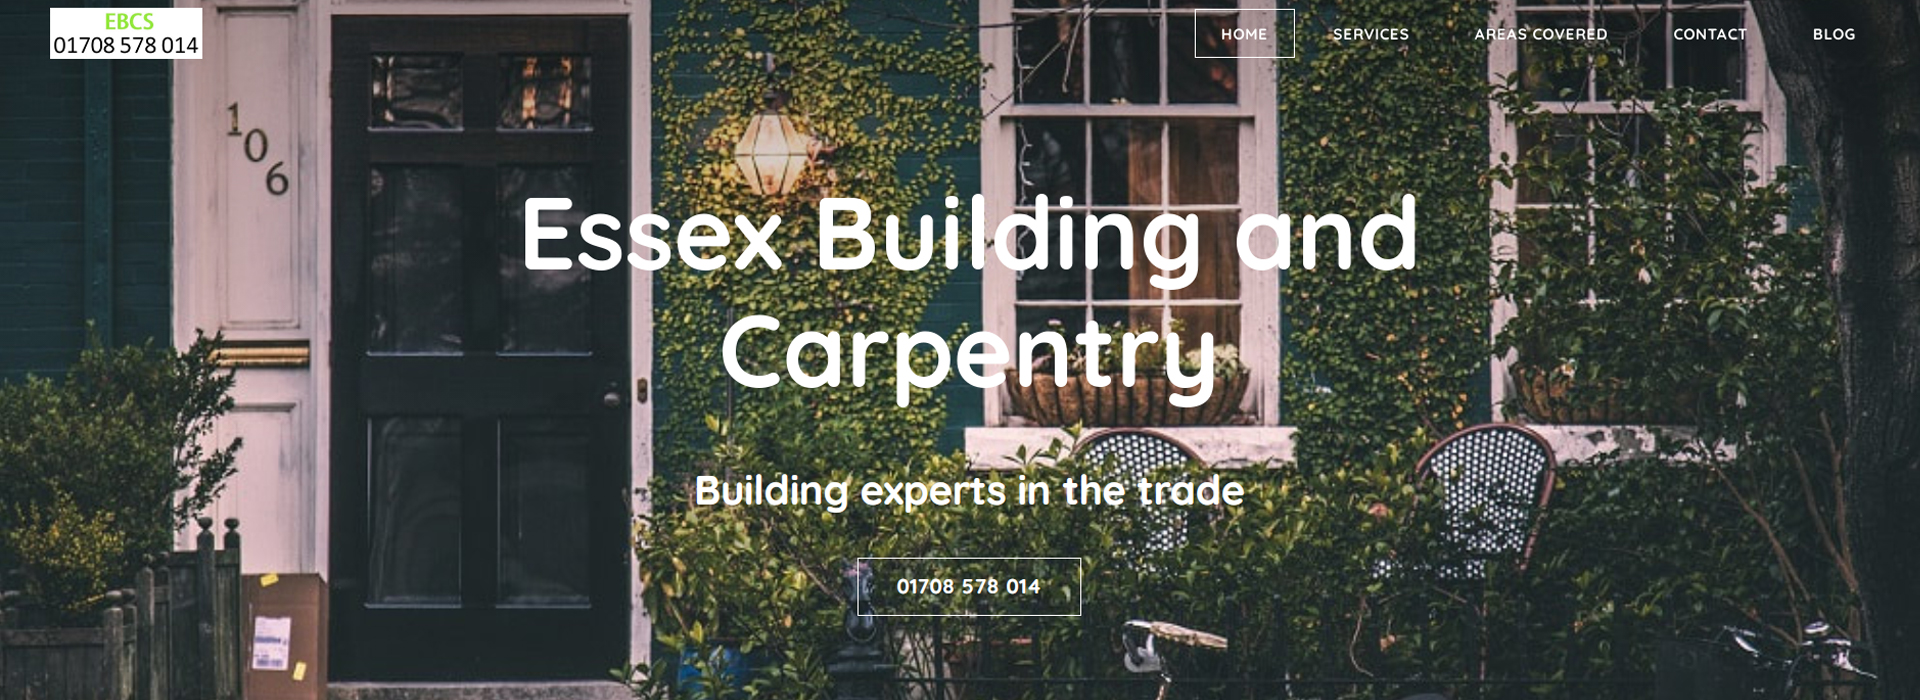 essex building and carpentry